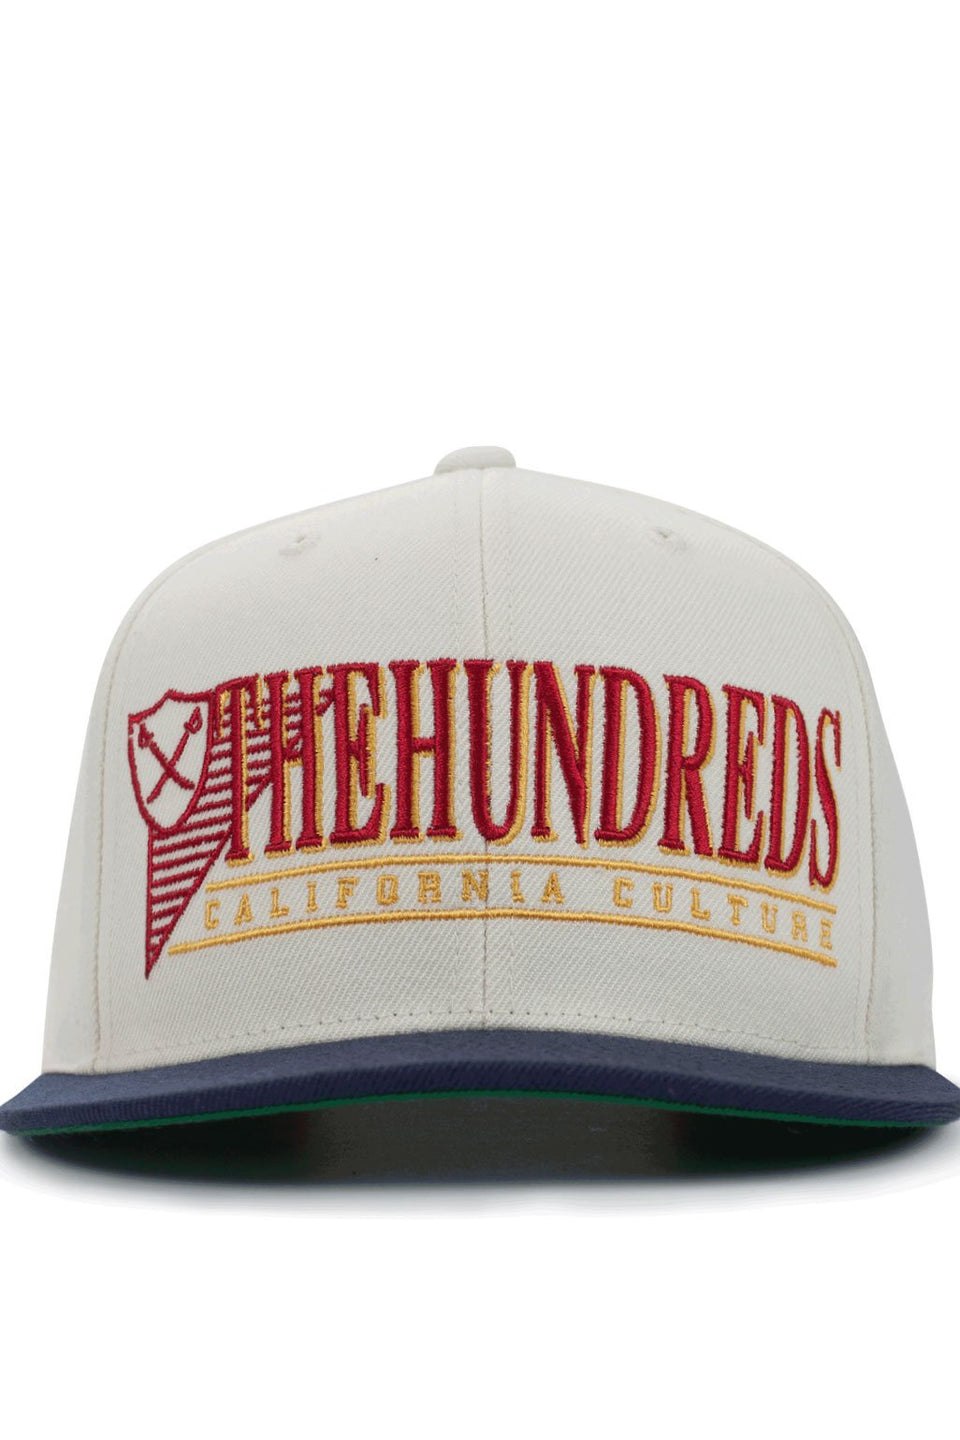 Decades Snapback-HEADWEAR-The Hundreds UK